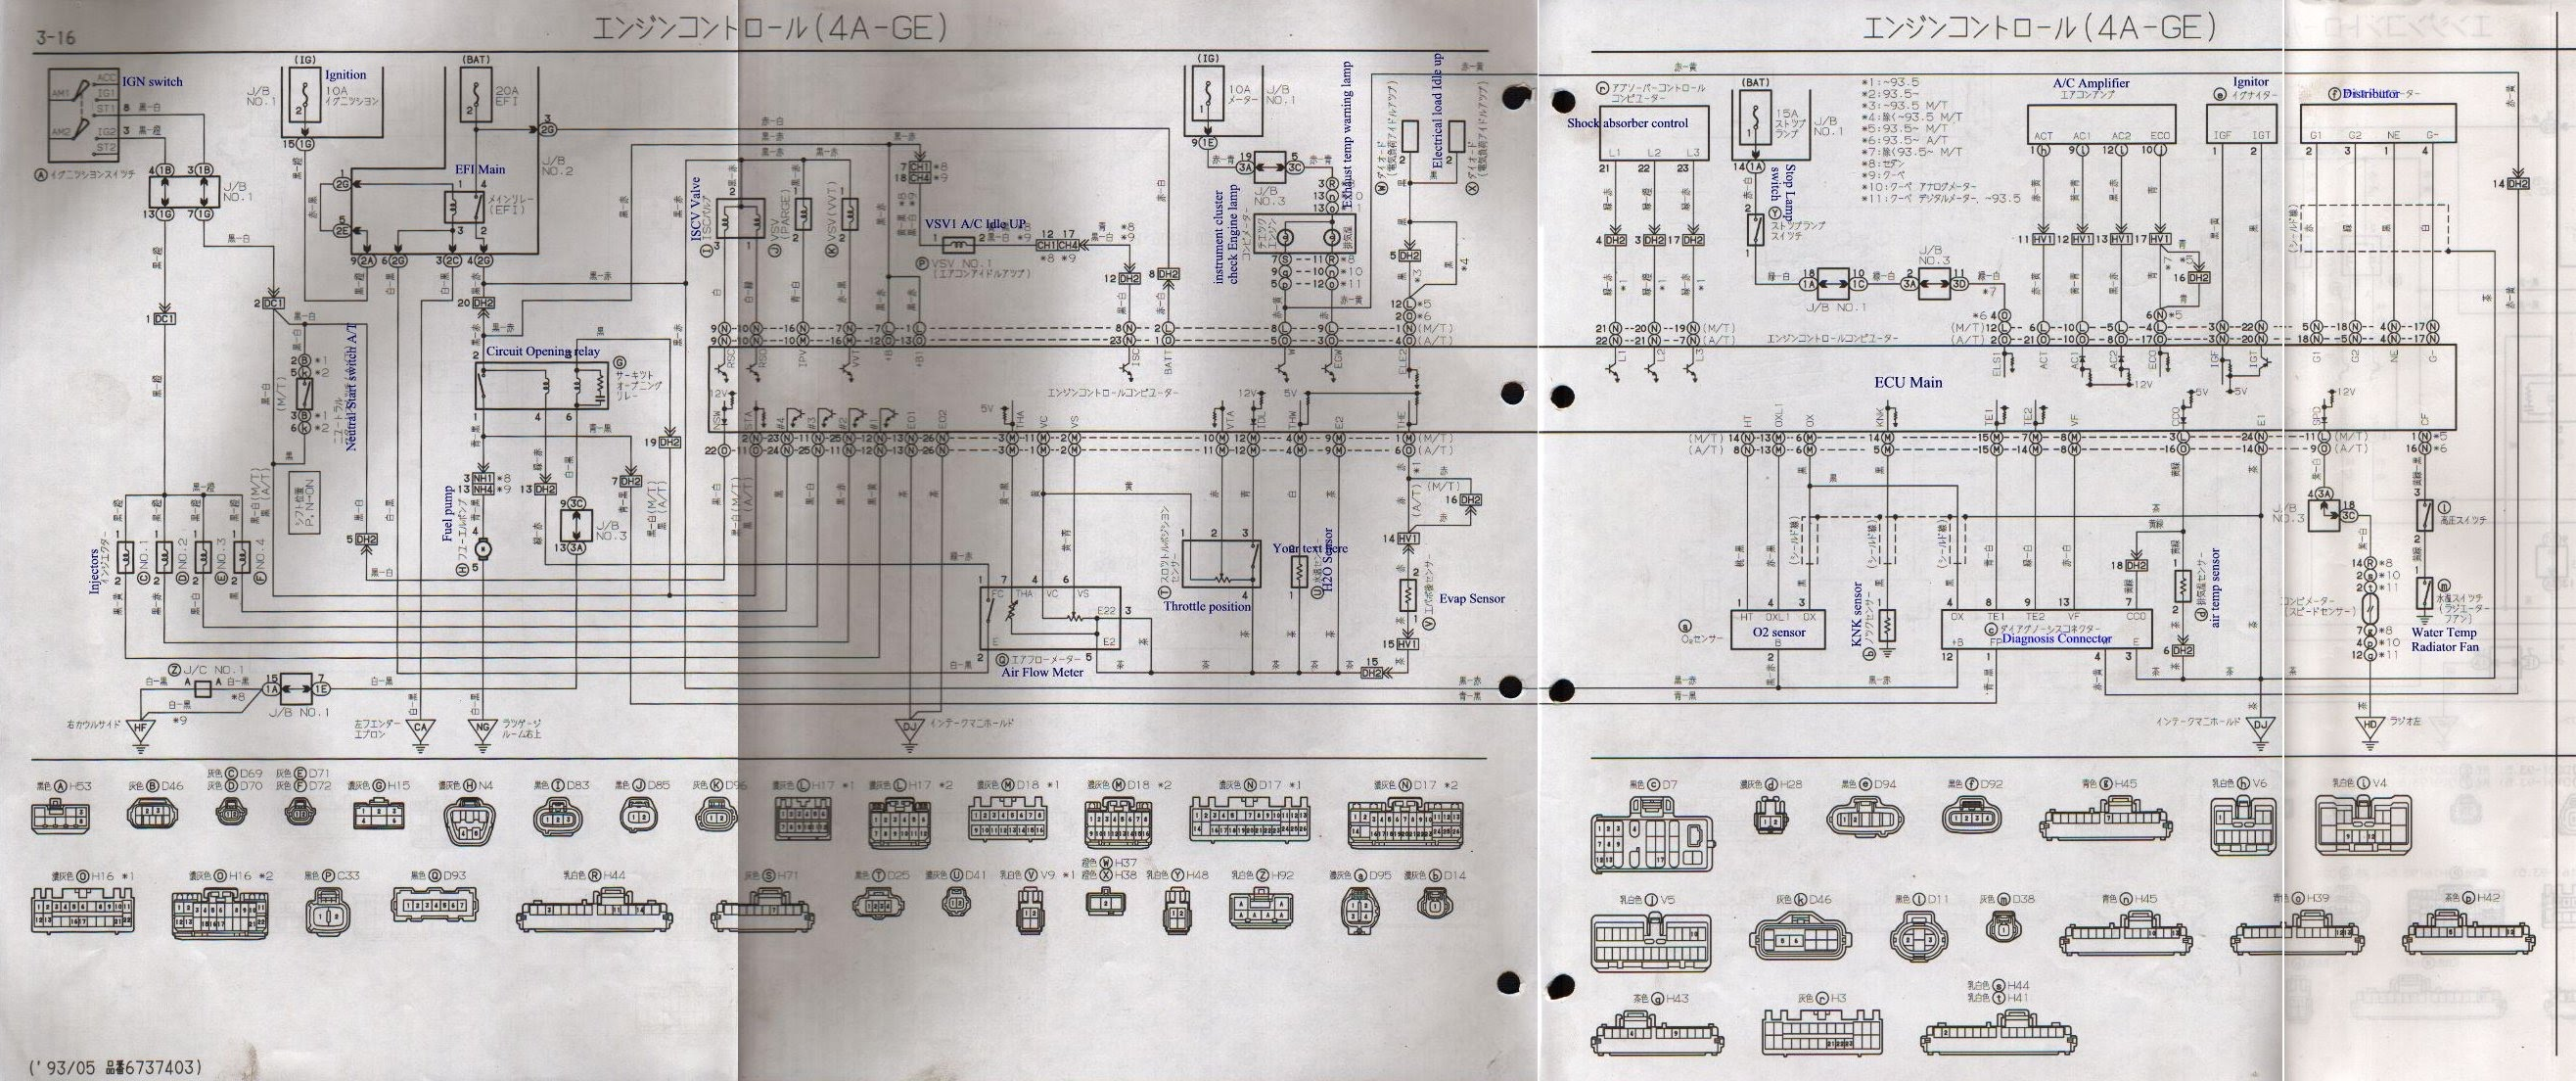 1uz wiring diagram wiring diagram and schematic design fourwheelforum let 39 s get this 1uz taa swap started